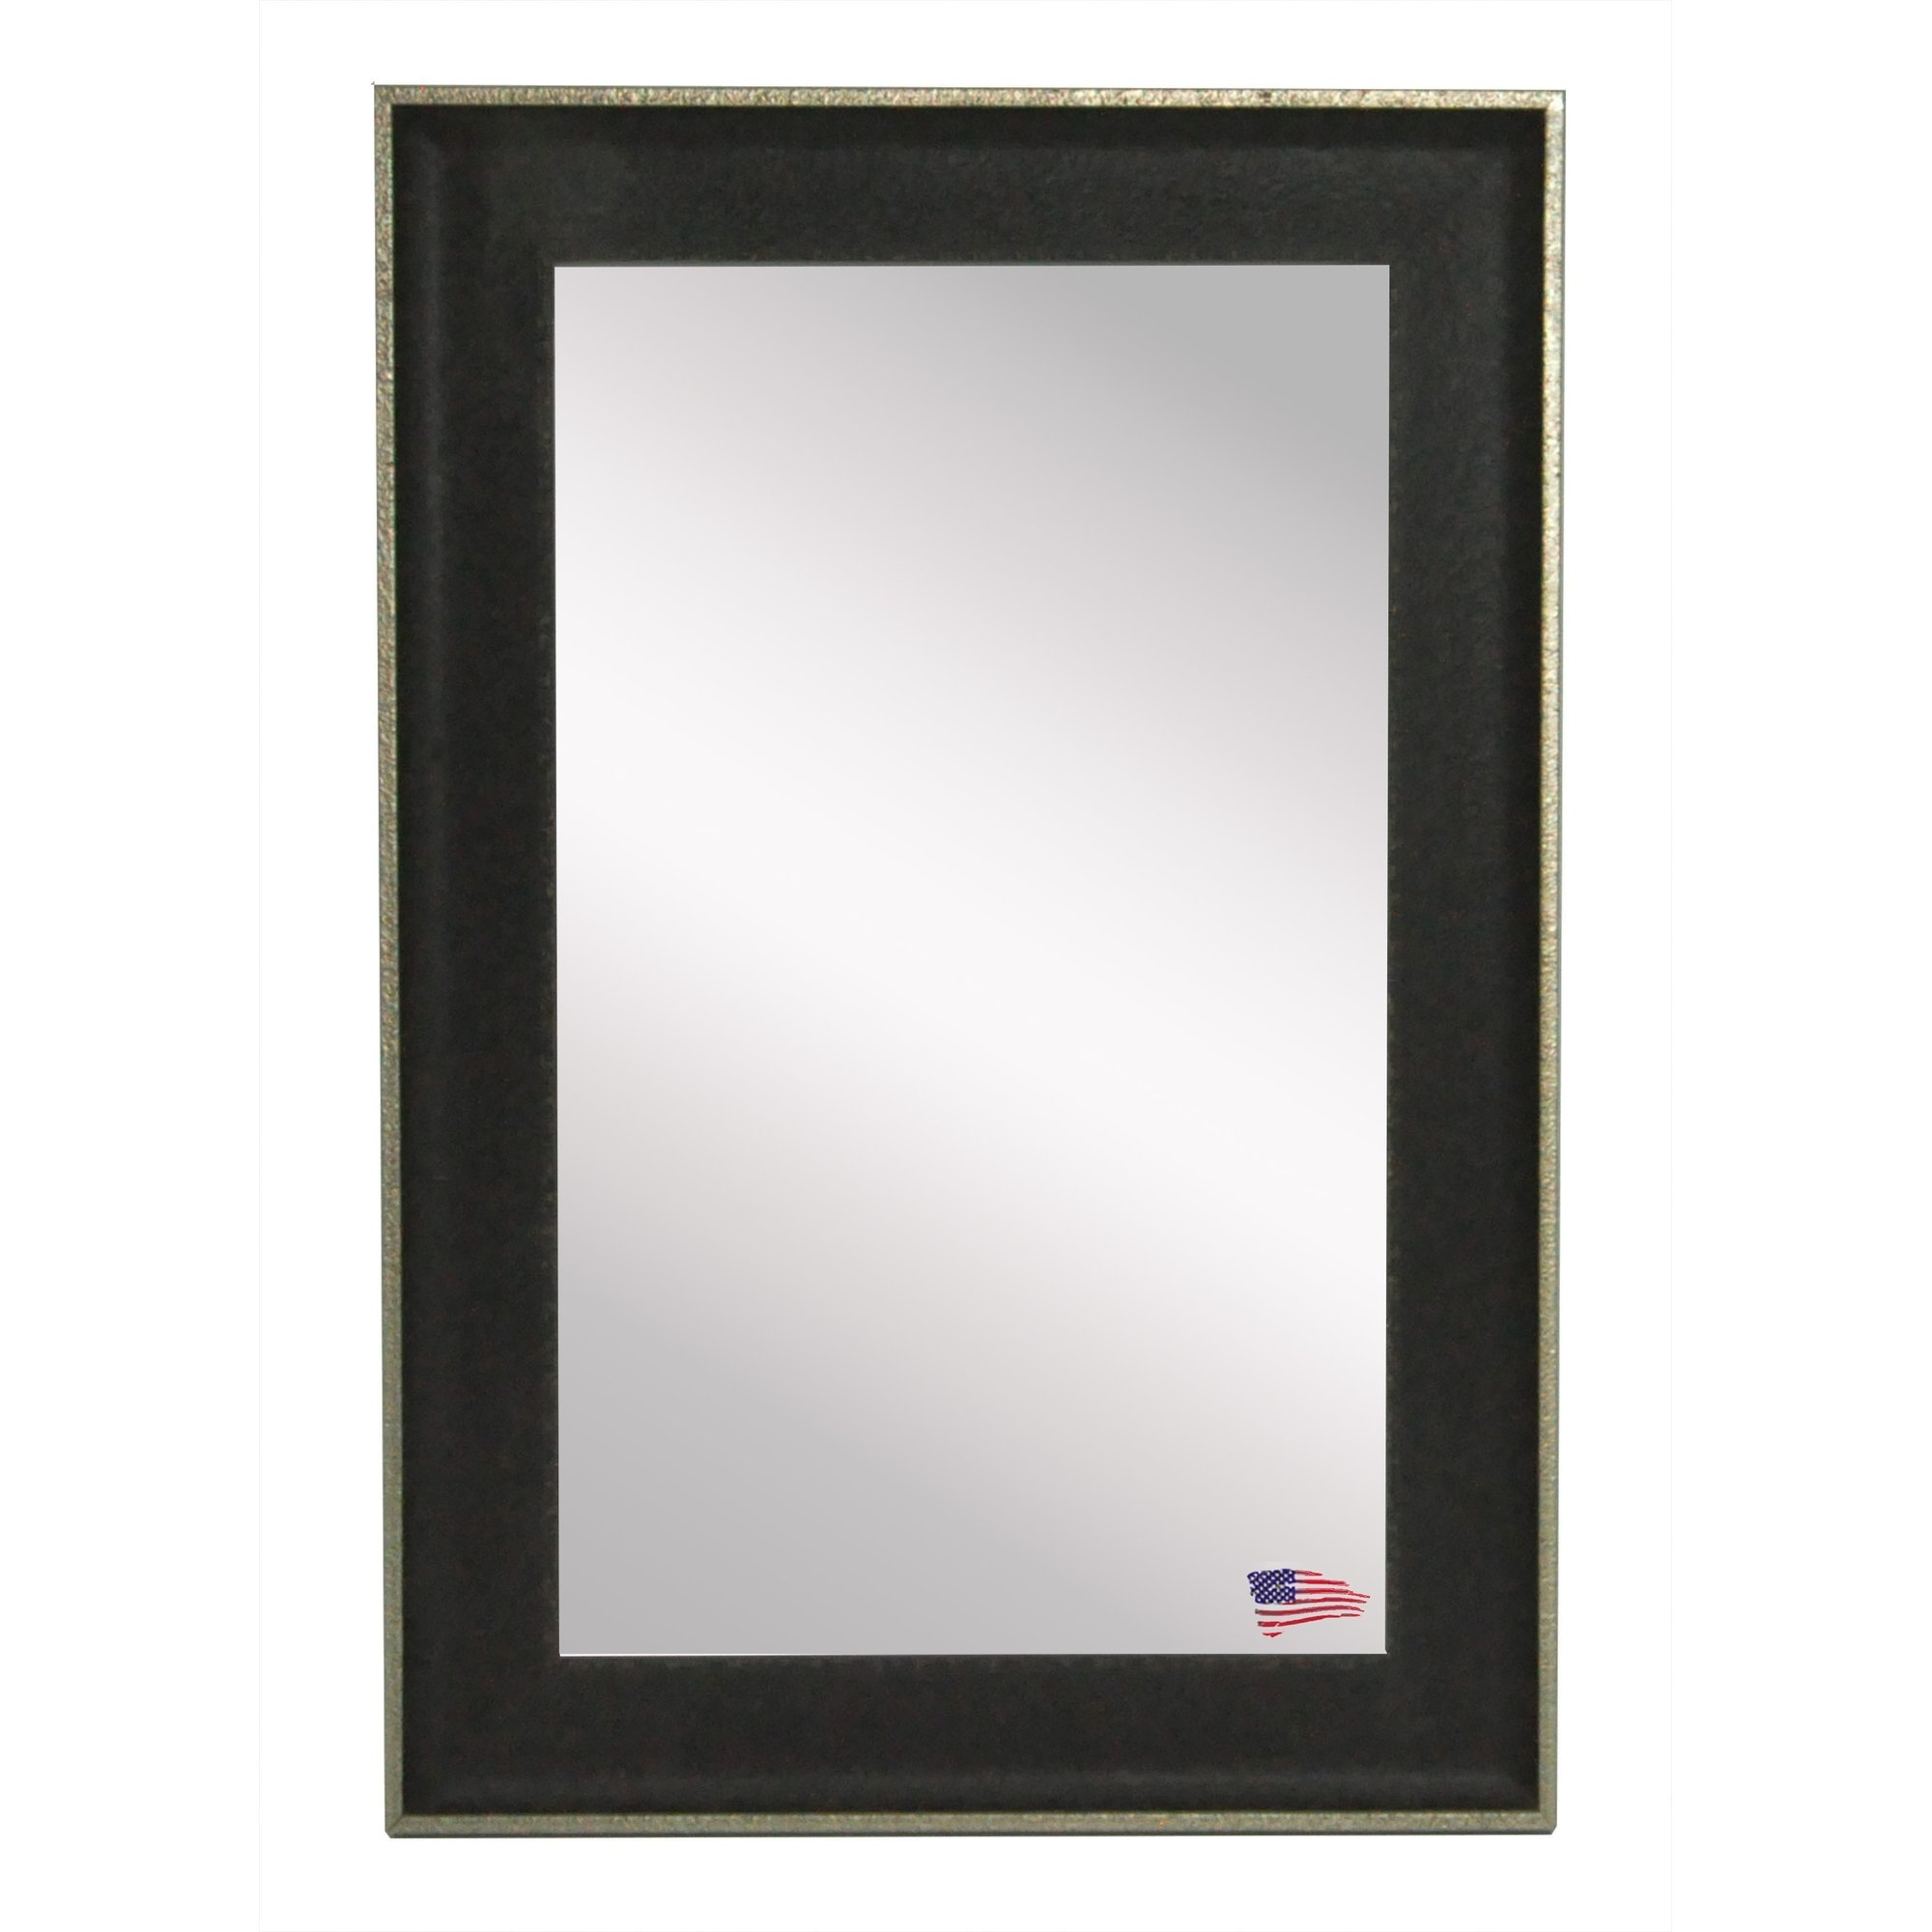 Rayne Mirrors Ava Vintage Black Mirror Wayfair With Black Vintage Mirror (Image 12 of 15)